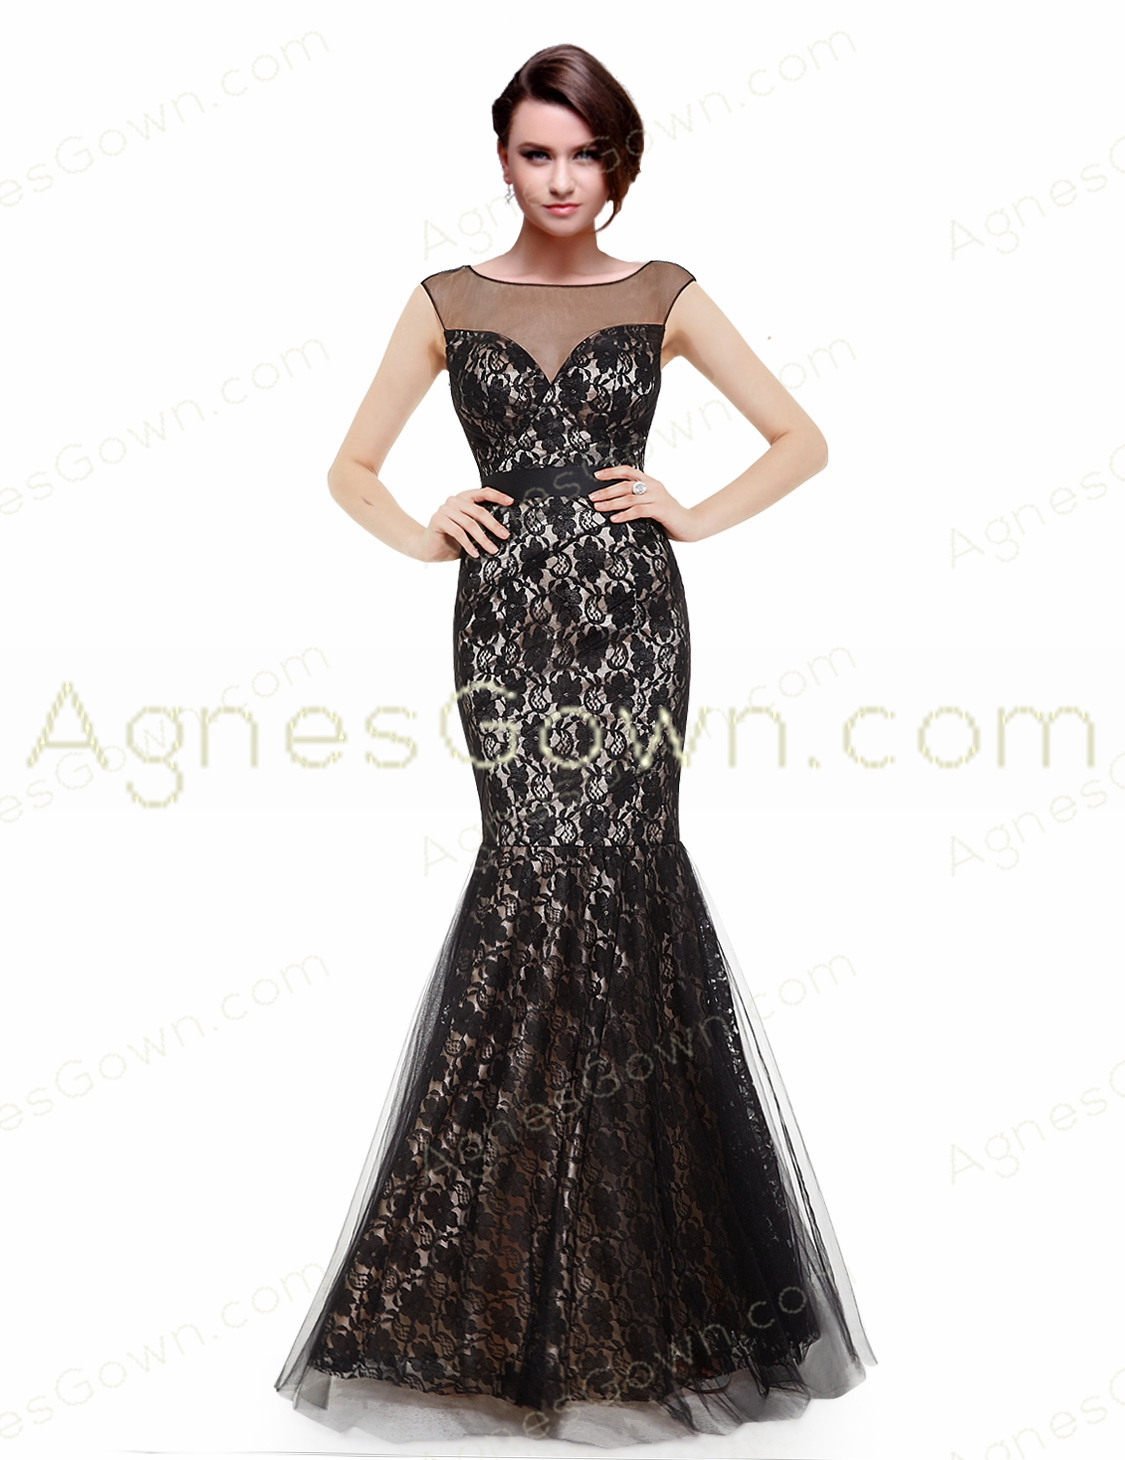 Glamour Black And Champagne Lace Mother Of The Bride Dress